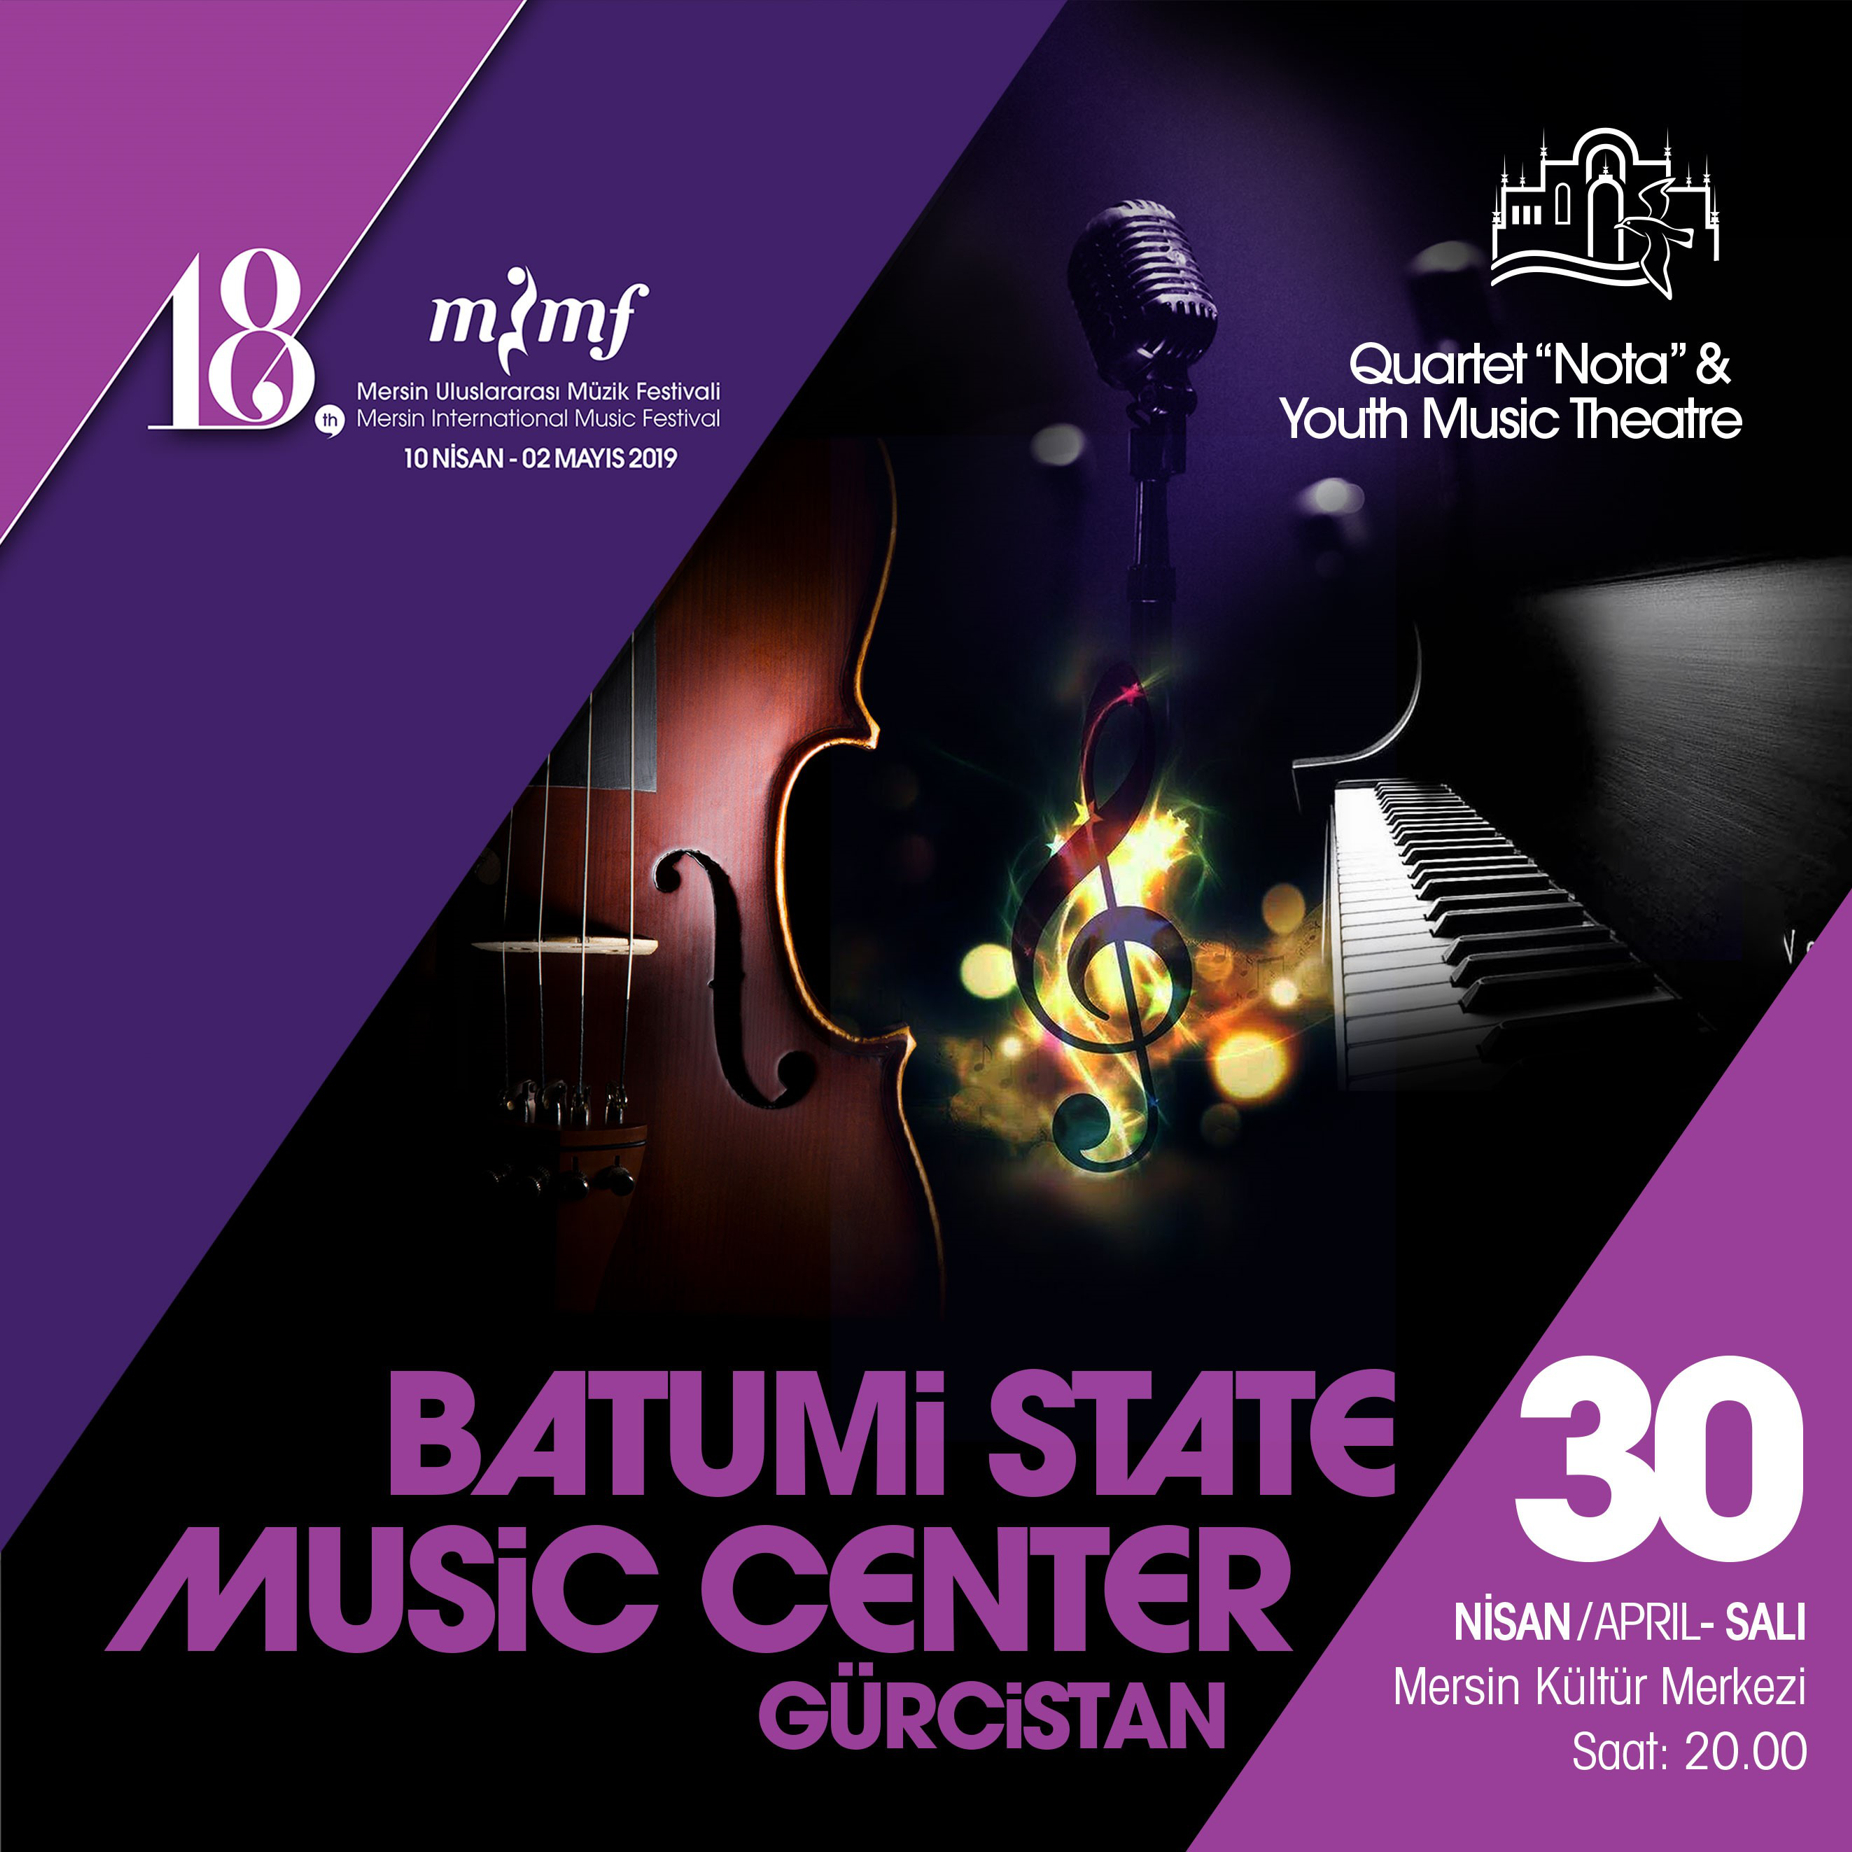 Batumi State Music Centre Gürcistan Youth Music Theatre & Quartet Nota